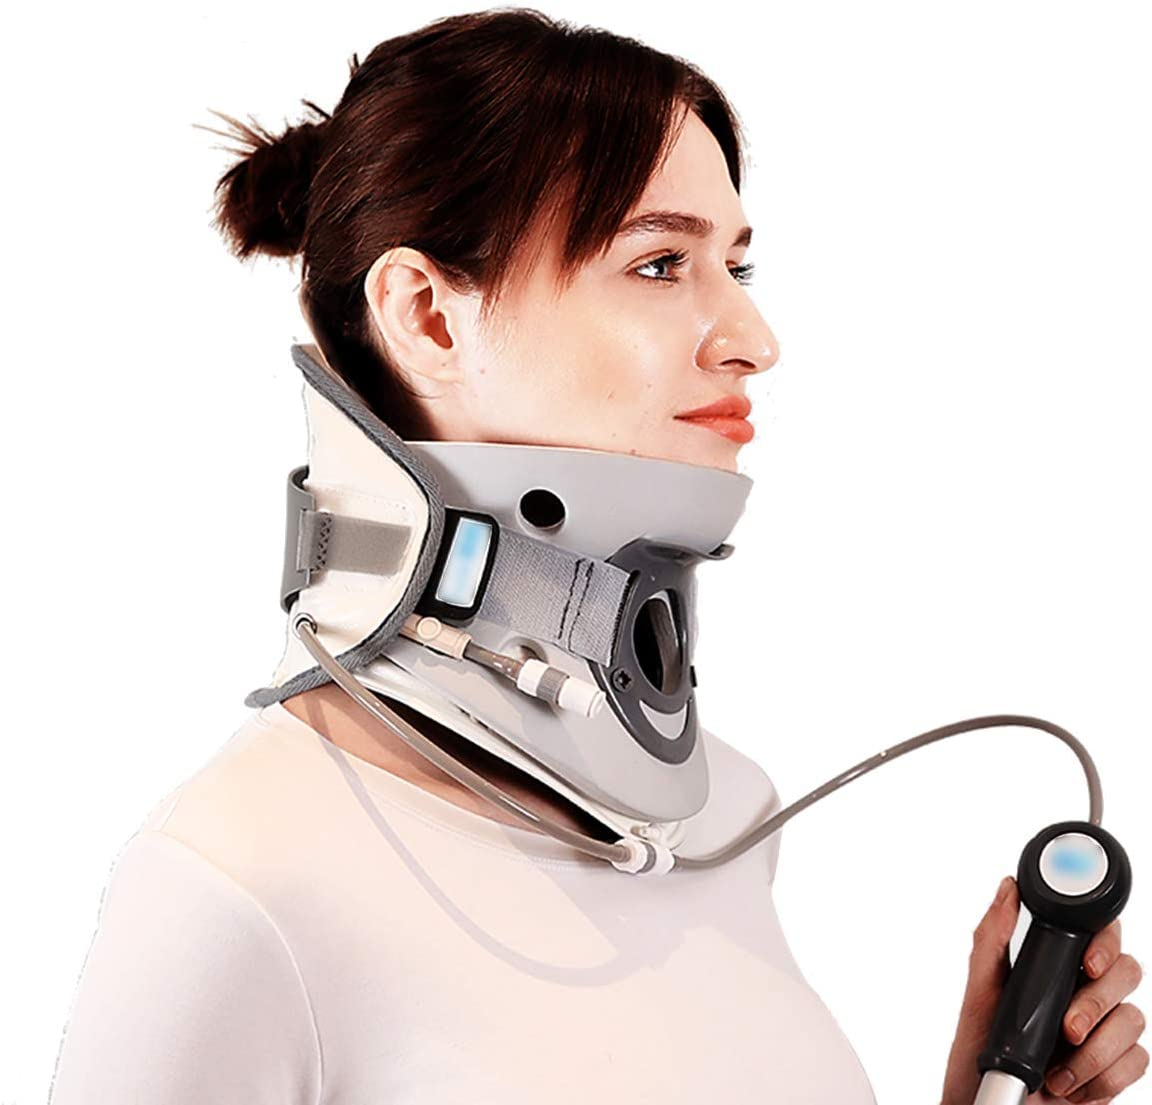 Cervical Neck Traction Device - Adult Cervical Traction Device, Stretch Correction, Home Inflatable Neck Support, Hot Neck Support